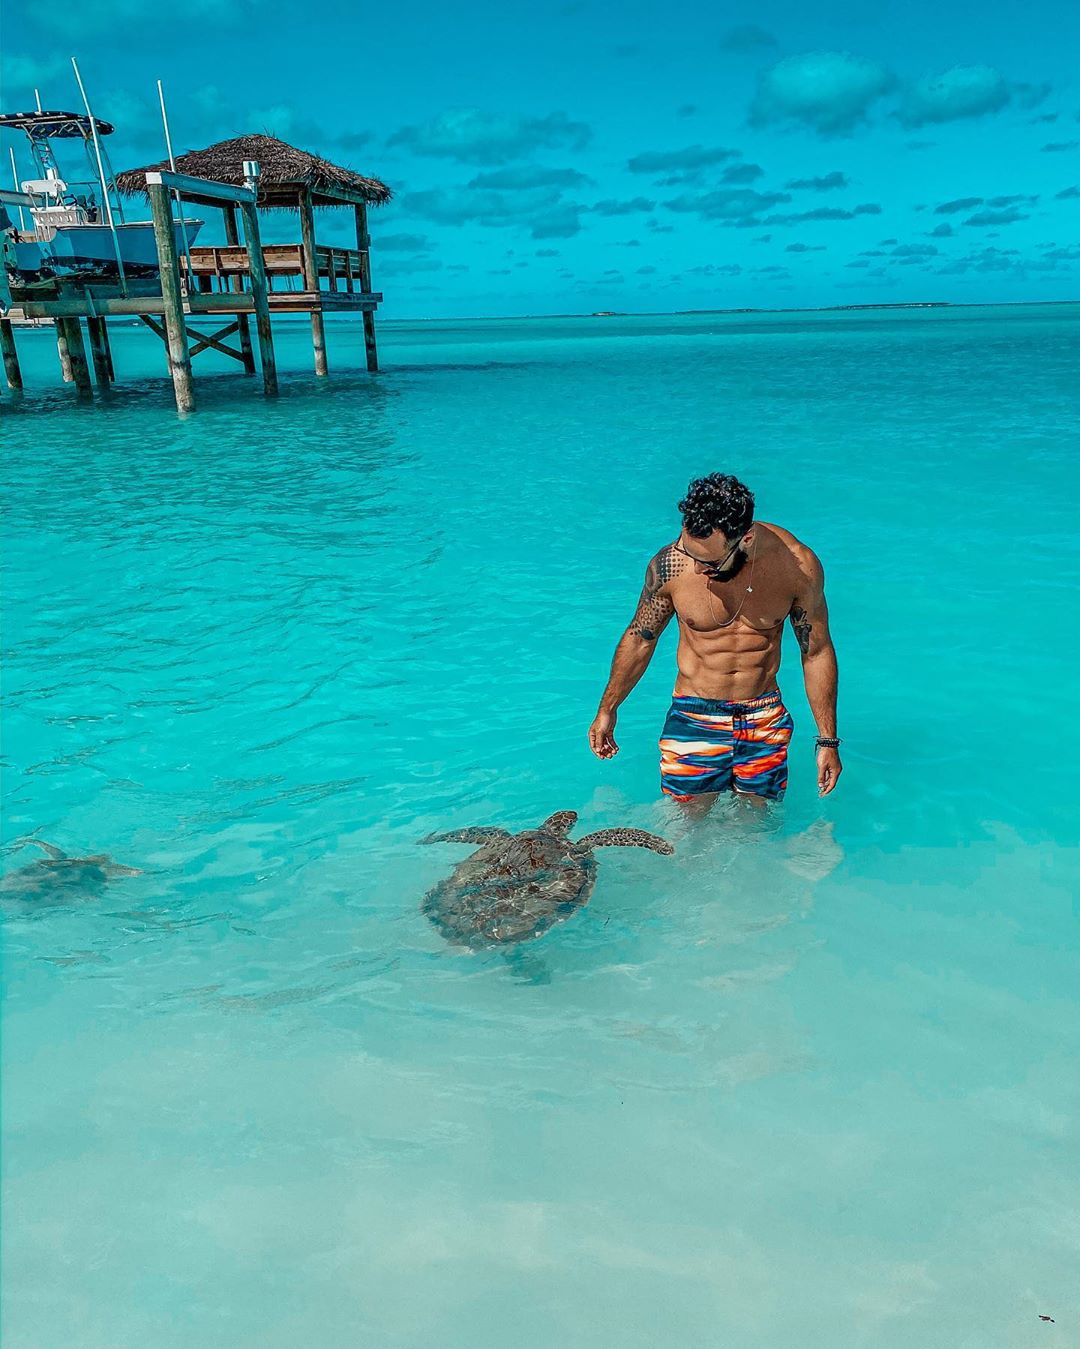 One Week Itinerary in the Exumas - Sea Turtles